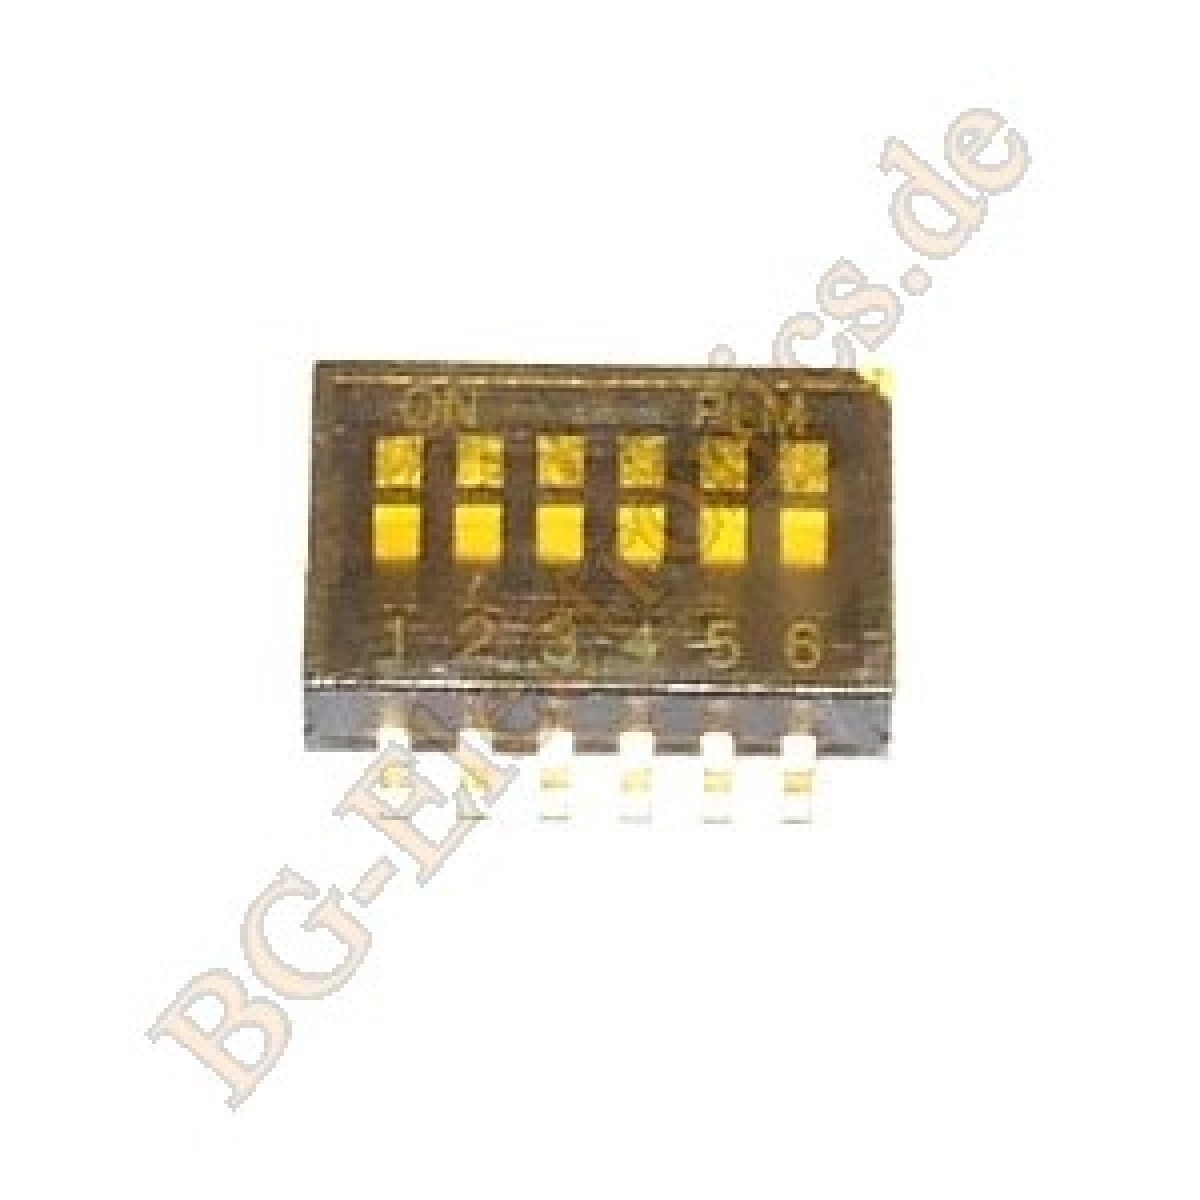 10-x-DIPS-6POL-Ultra-miniature-Surface-Mount-Half-pitch-DIP-C-K-Compon-10pcs